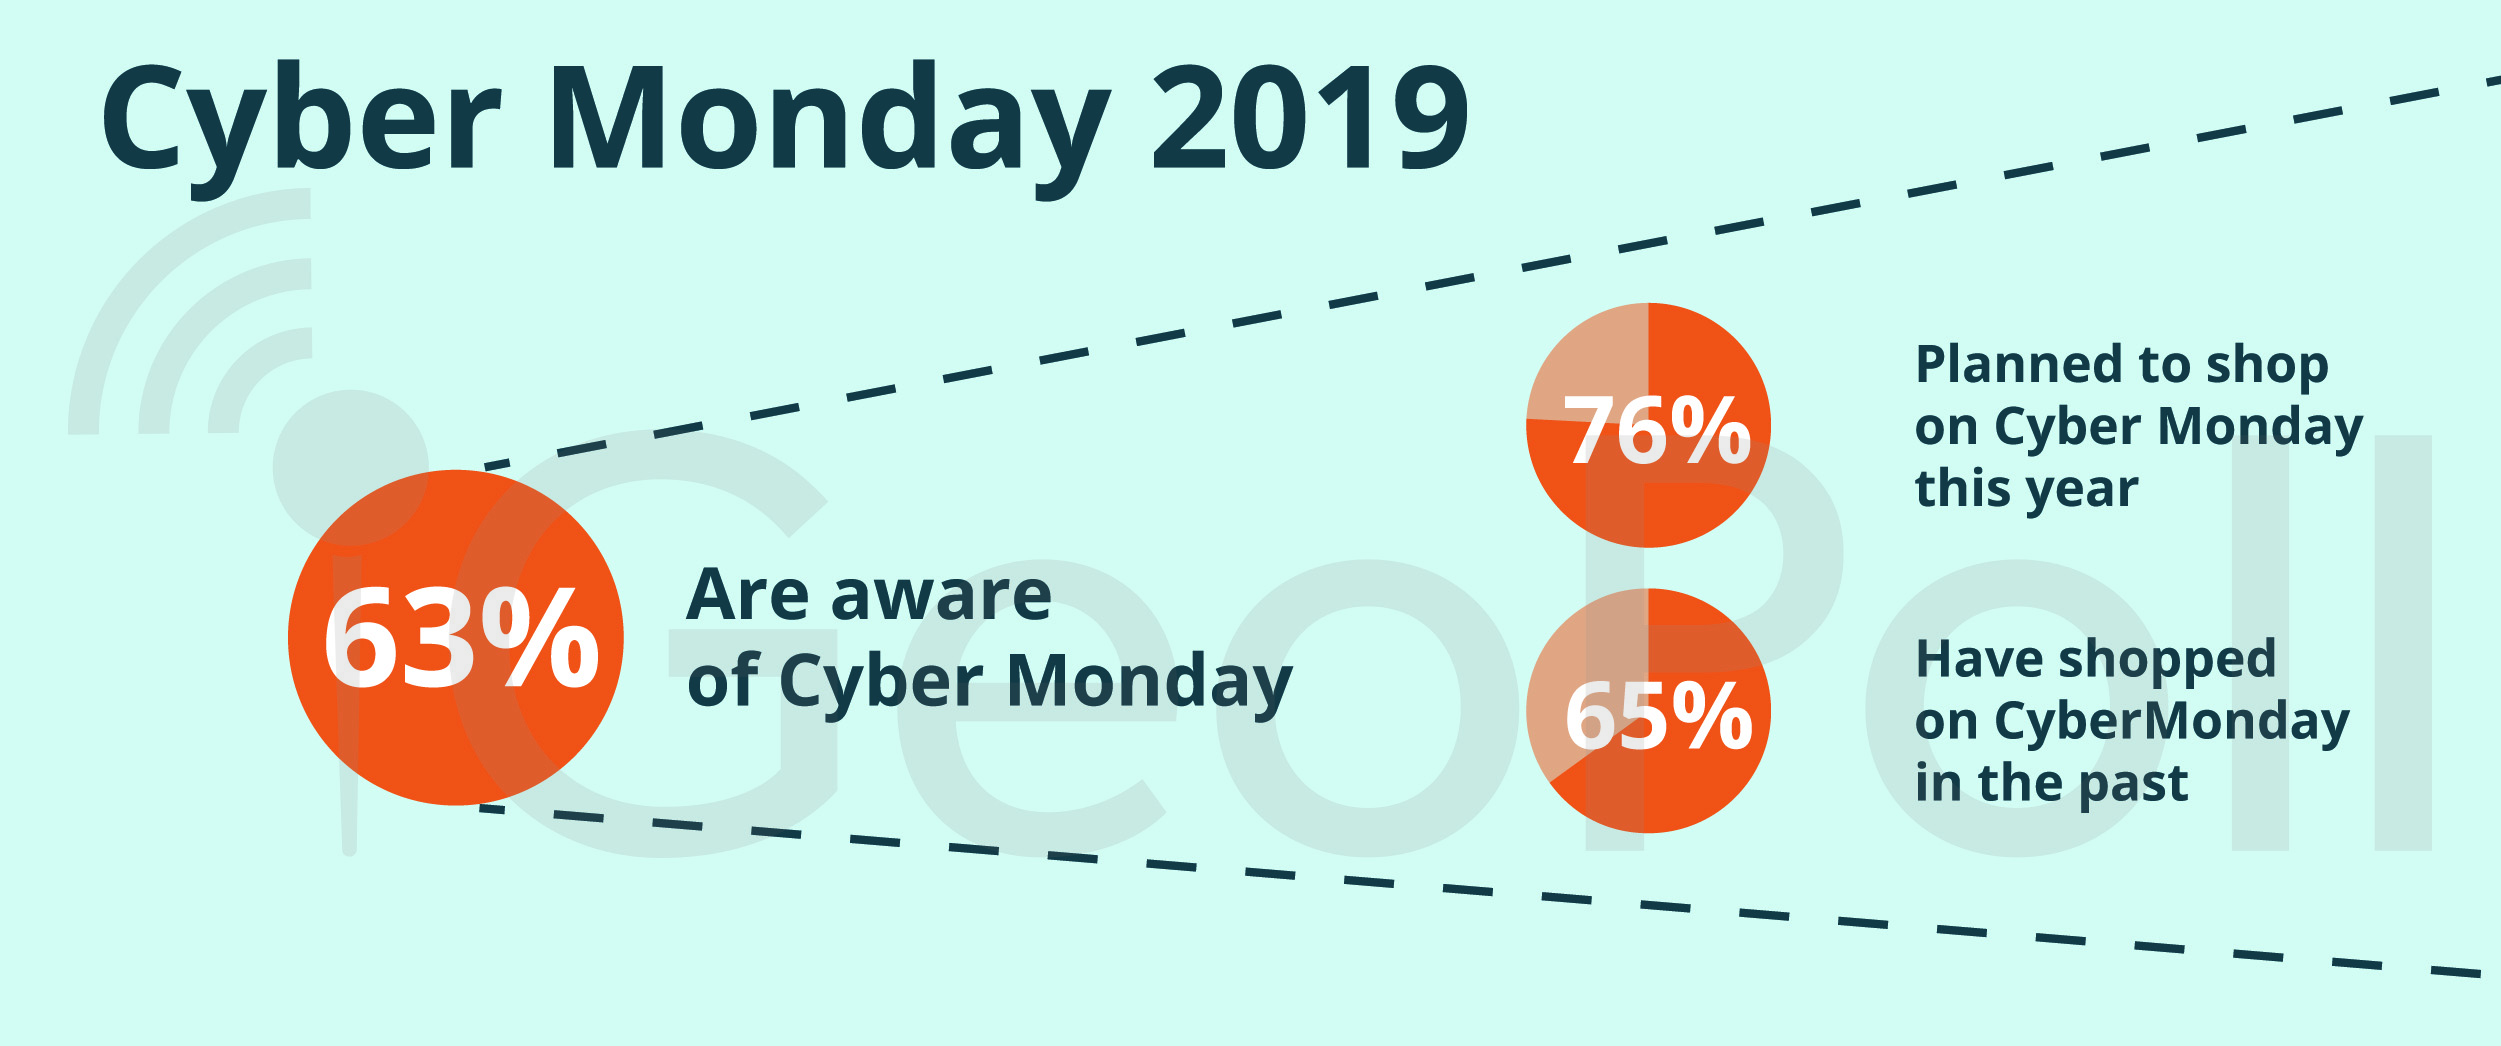 Cyber Monday South Africa 2019